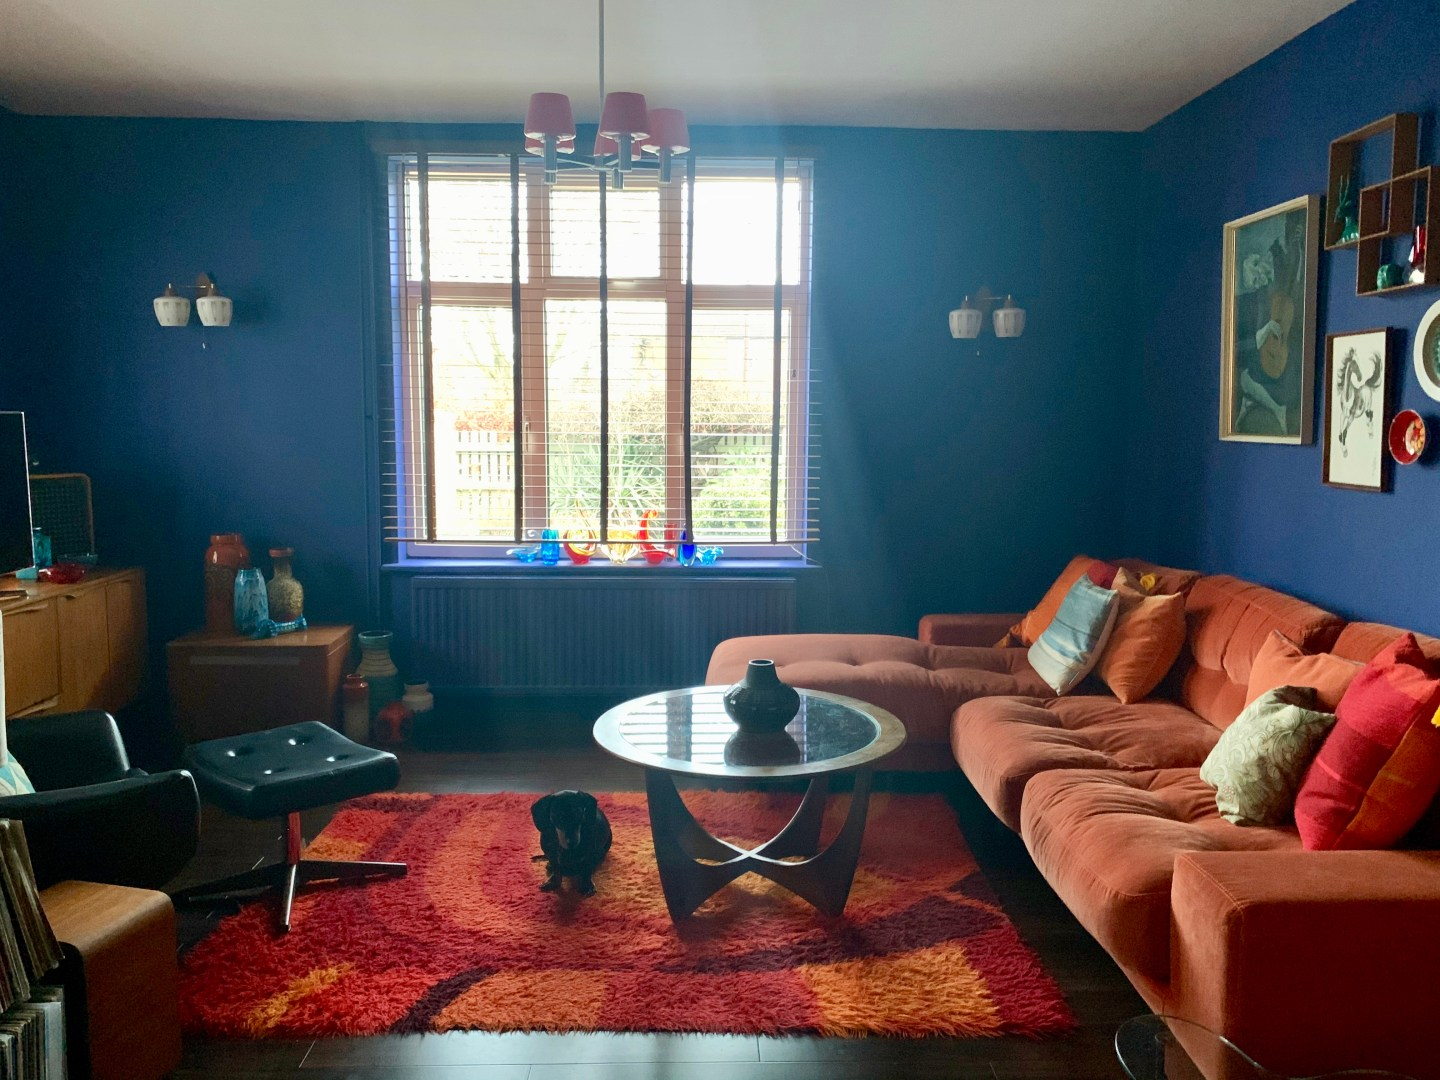 Our Mid Century Modern Lounge with Annie Sloan Paint & an Orange Sofa